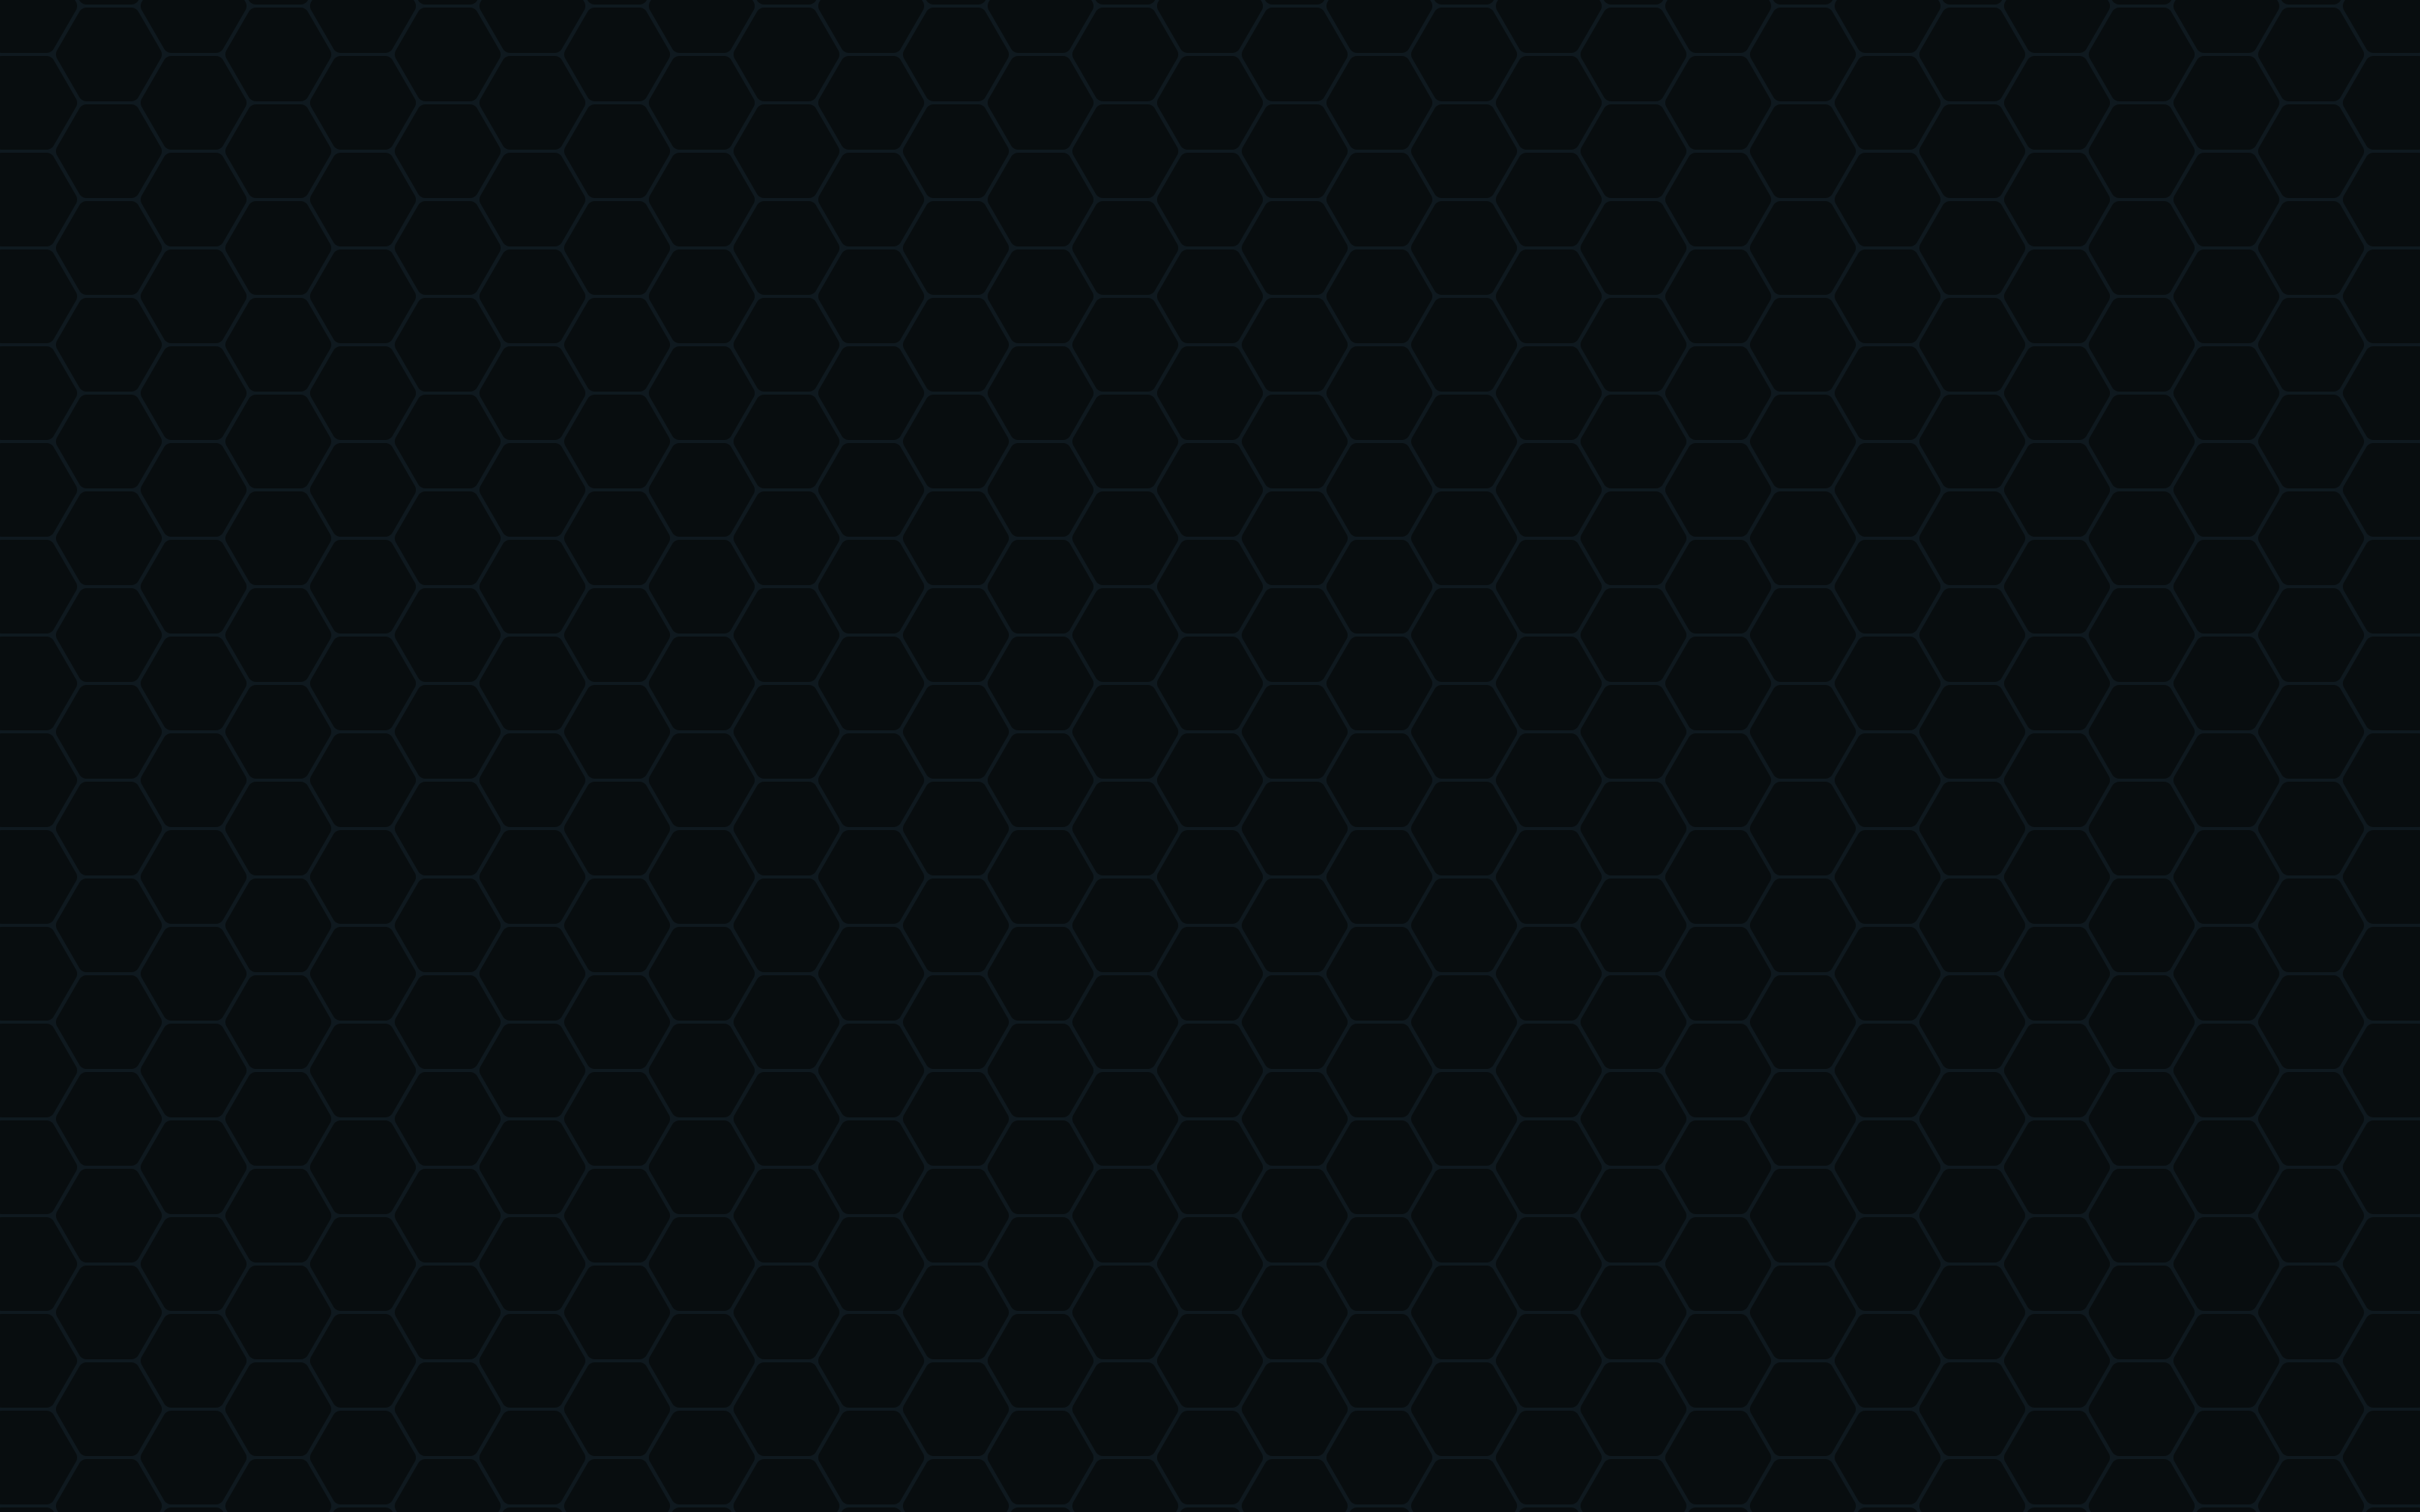 Hexagon B:5656-SSB Full HD Backgrounds